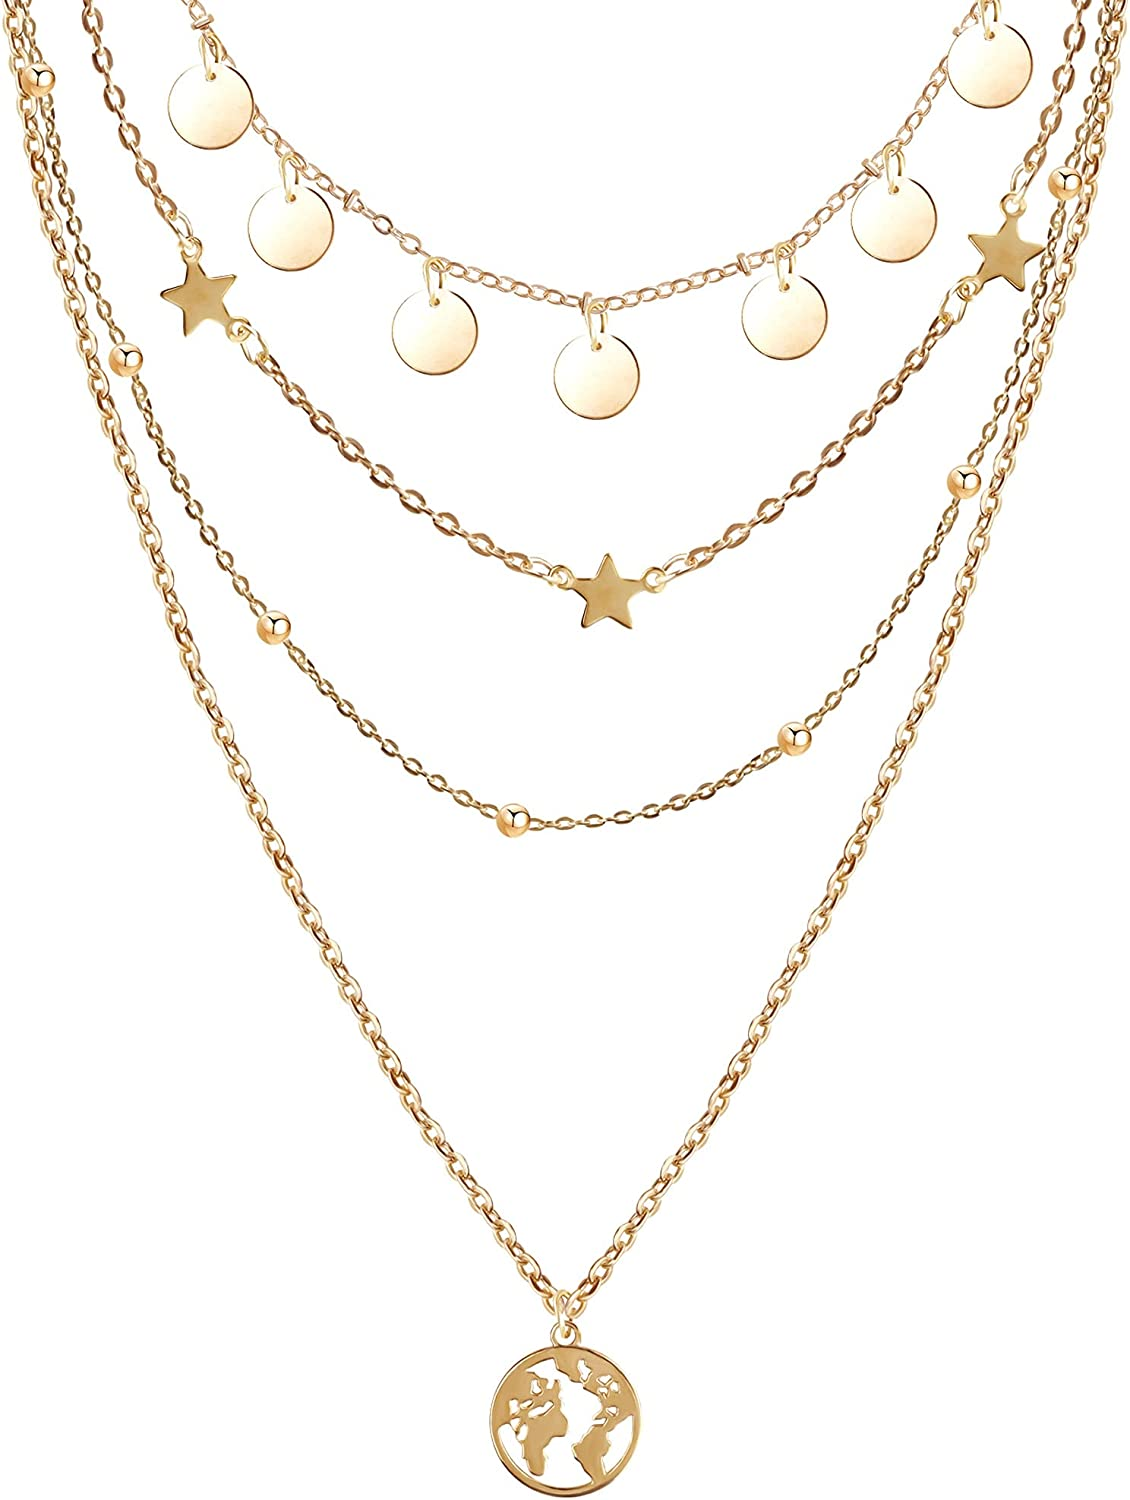 MISS RIGHT Dainty Layered Chain Necklaces for Women Girls 14K Gold Plated, Pearl Coin Medallion Padlock Pendants Layering Choker Necklace